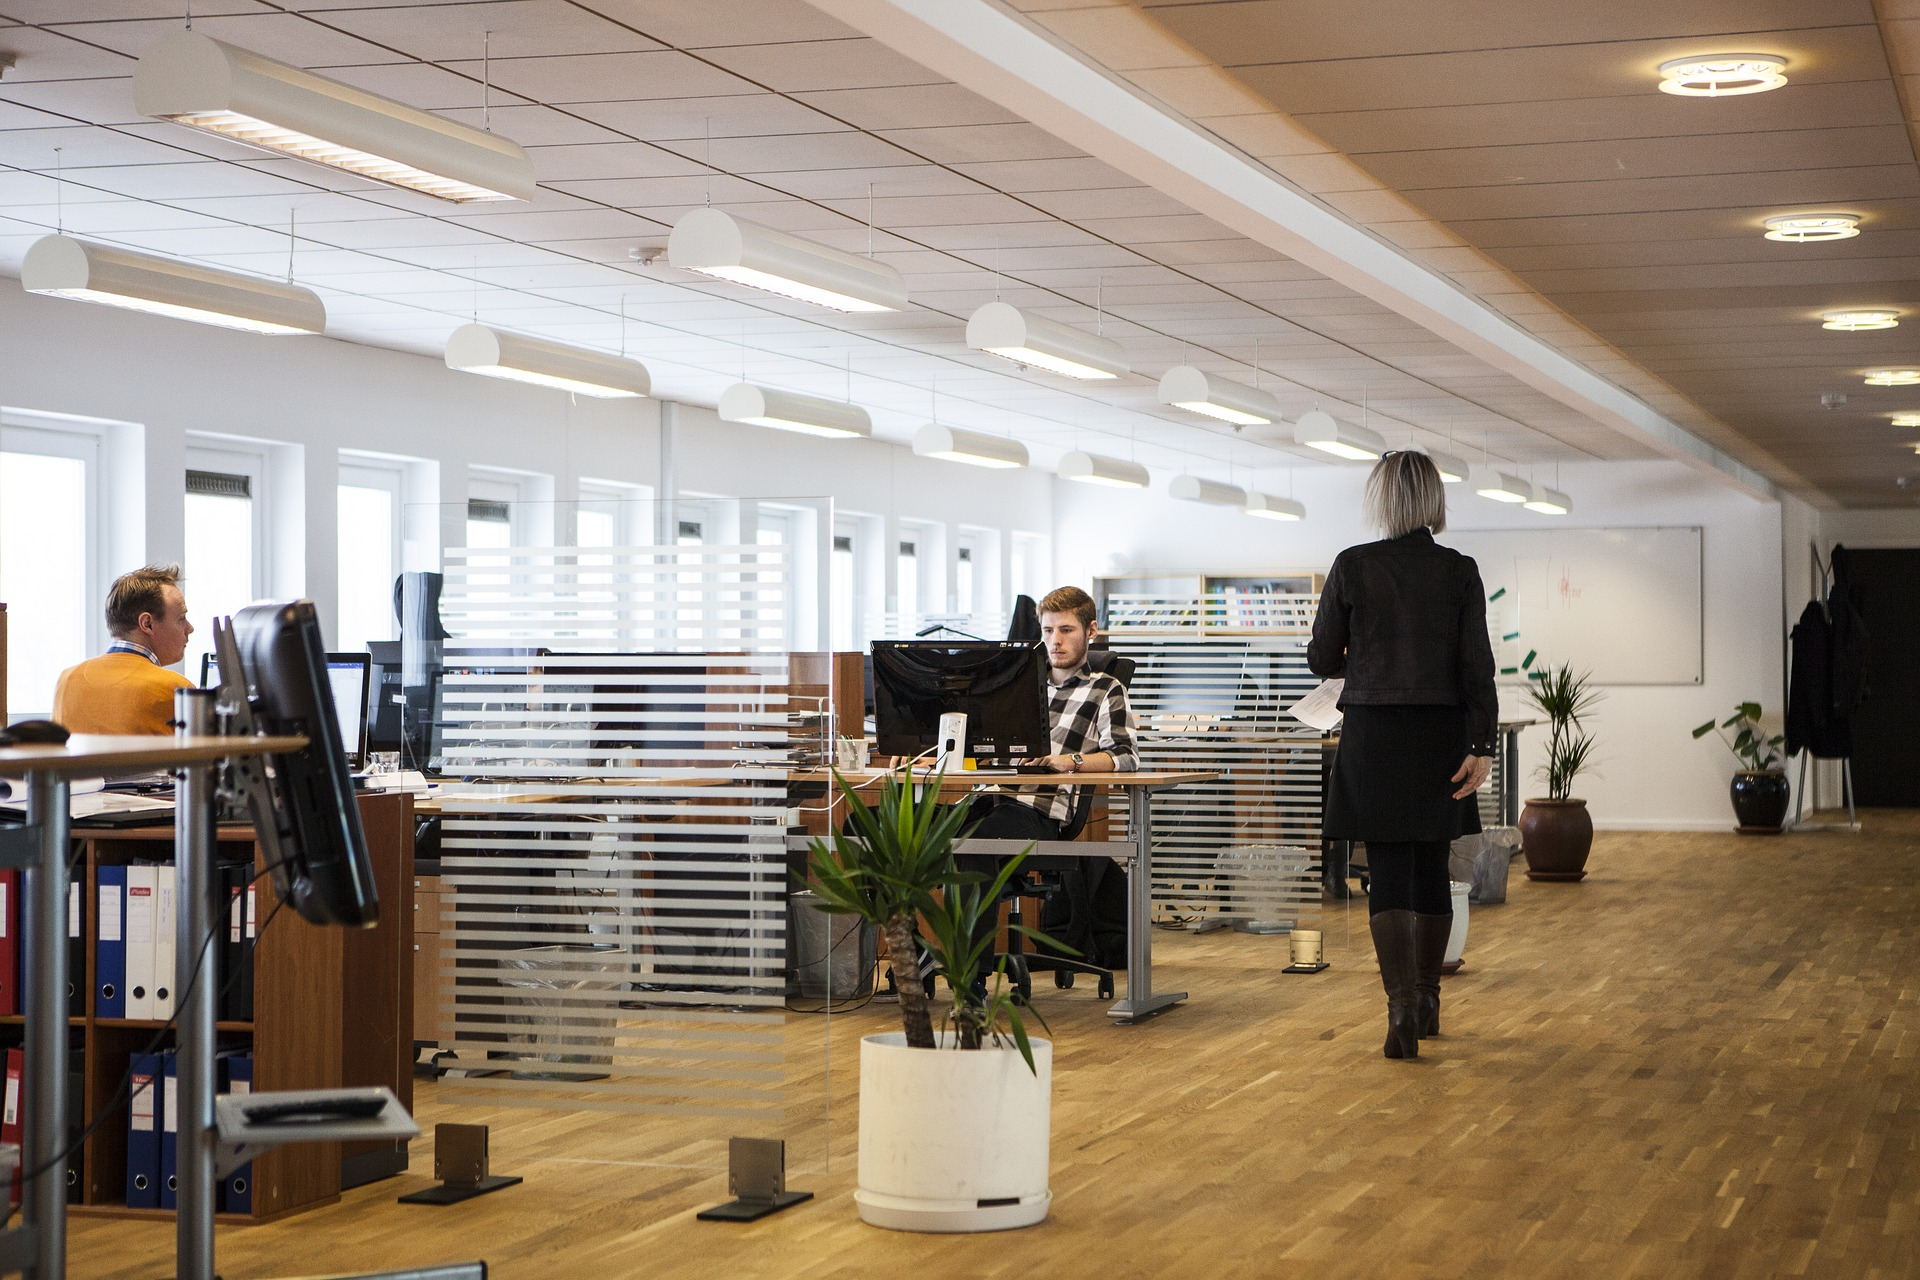 Building a New Office Space? Should You Choose Cubicles or Private Offices?